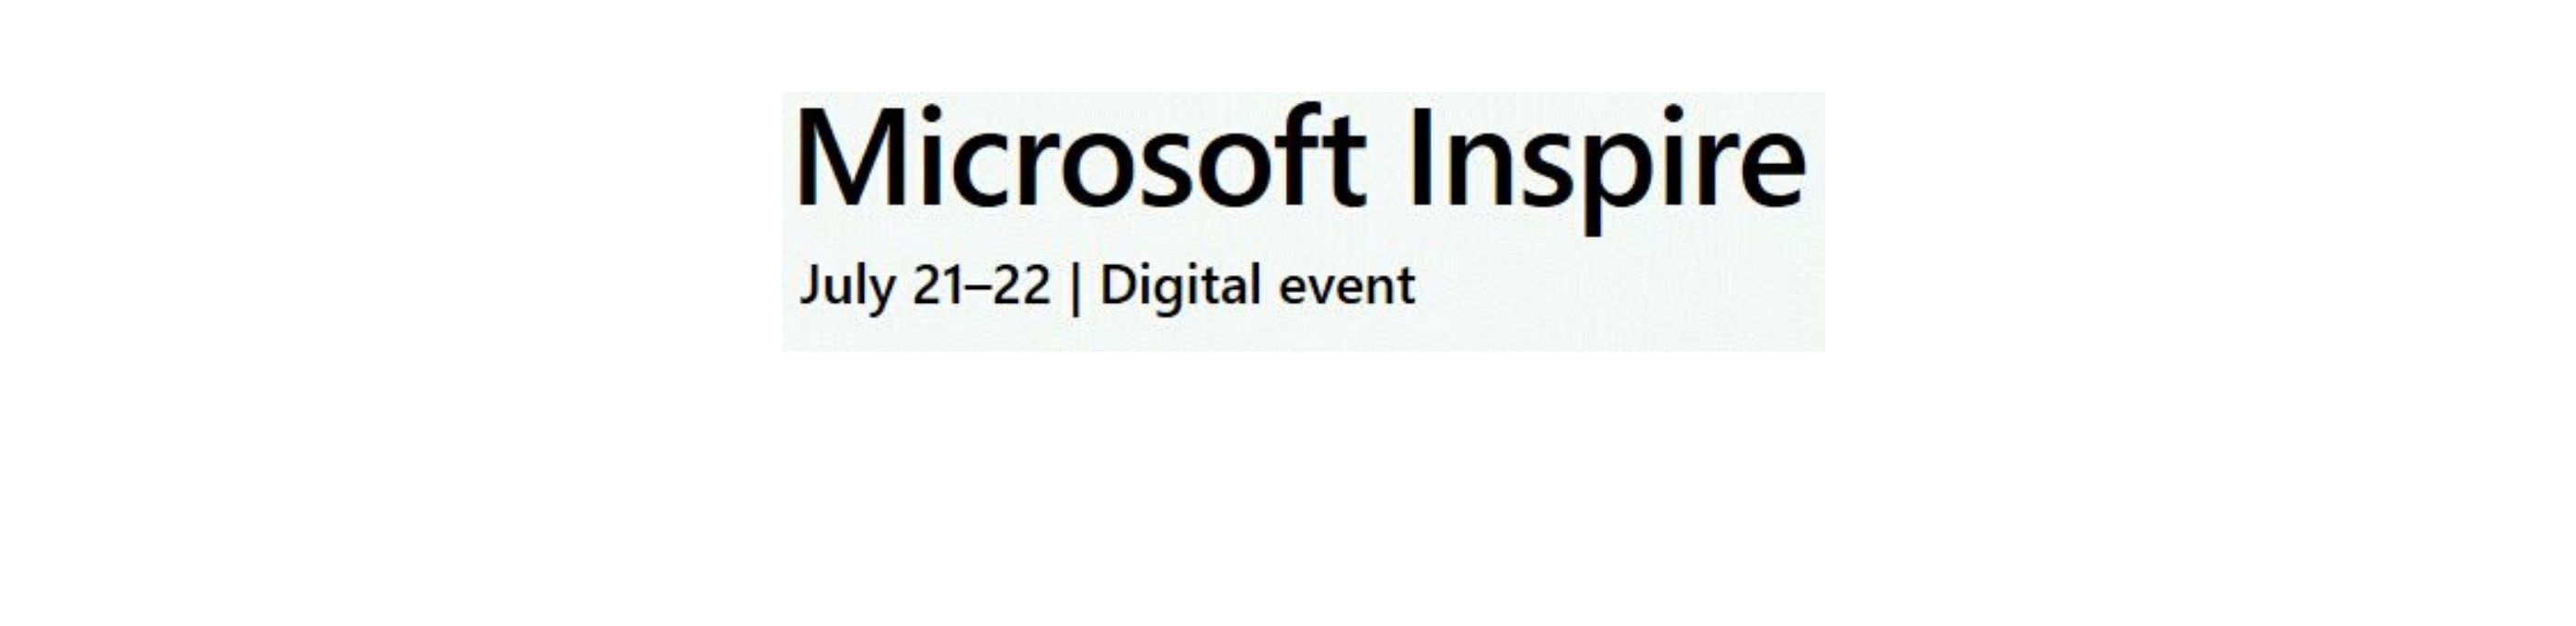 Microsoft Inspire Event Page Header SMALLER